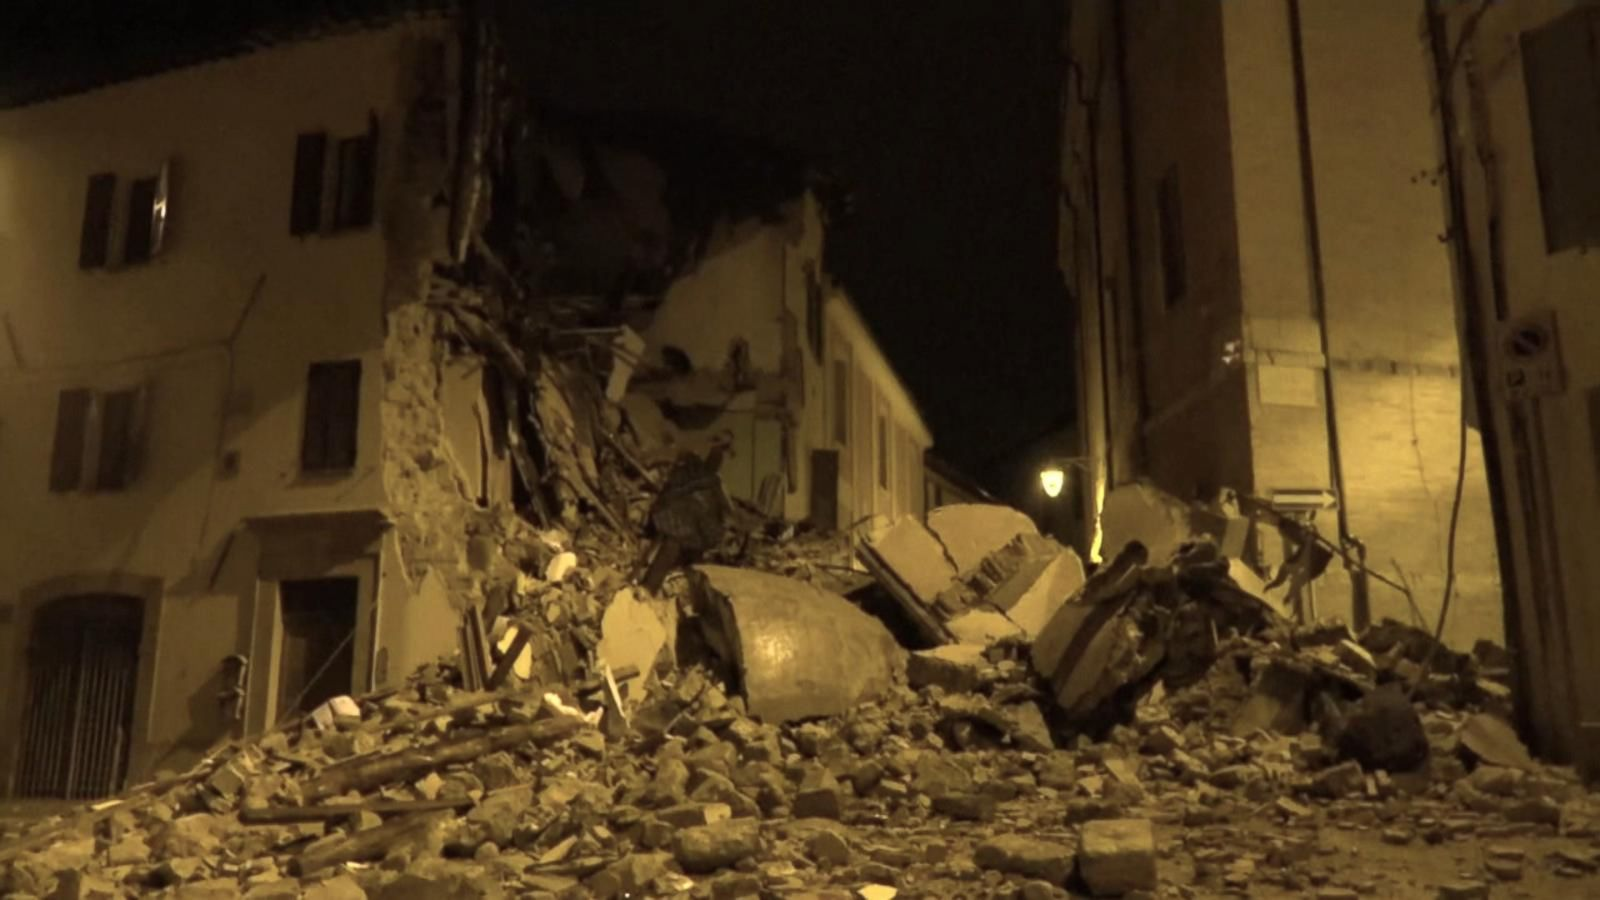 VIDEO: 2 Earthquakes Hit Central Italy Caused 'Catastrophic' Damage